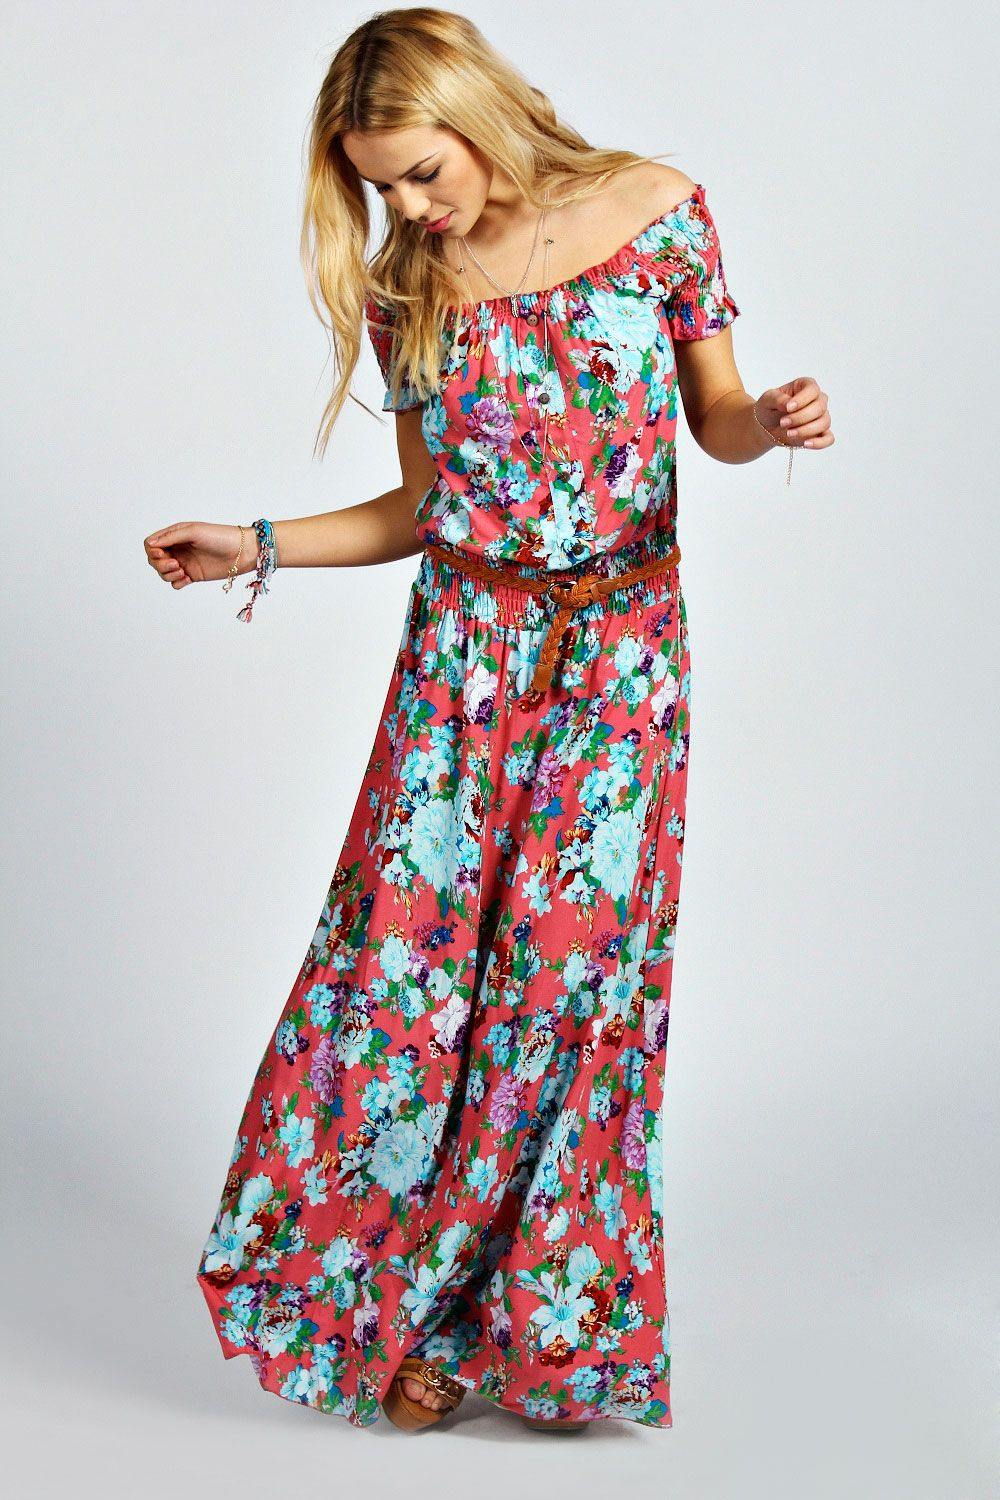 c3b94e38720 Jamie Off The Shoulder Floral Maxi Dress at boohoo.com. this would be so  cute with a hippie hat.